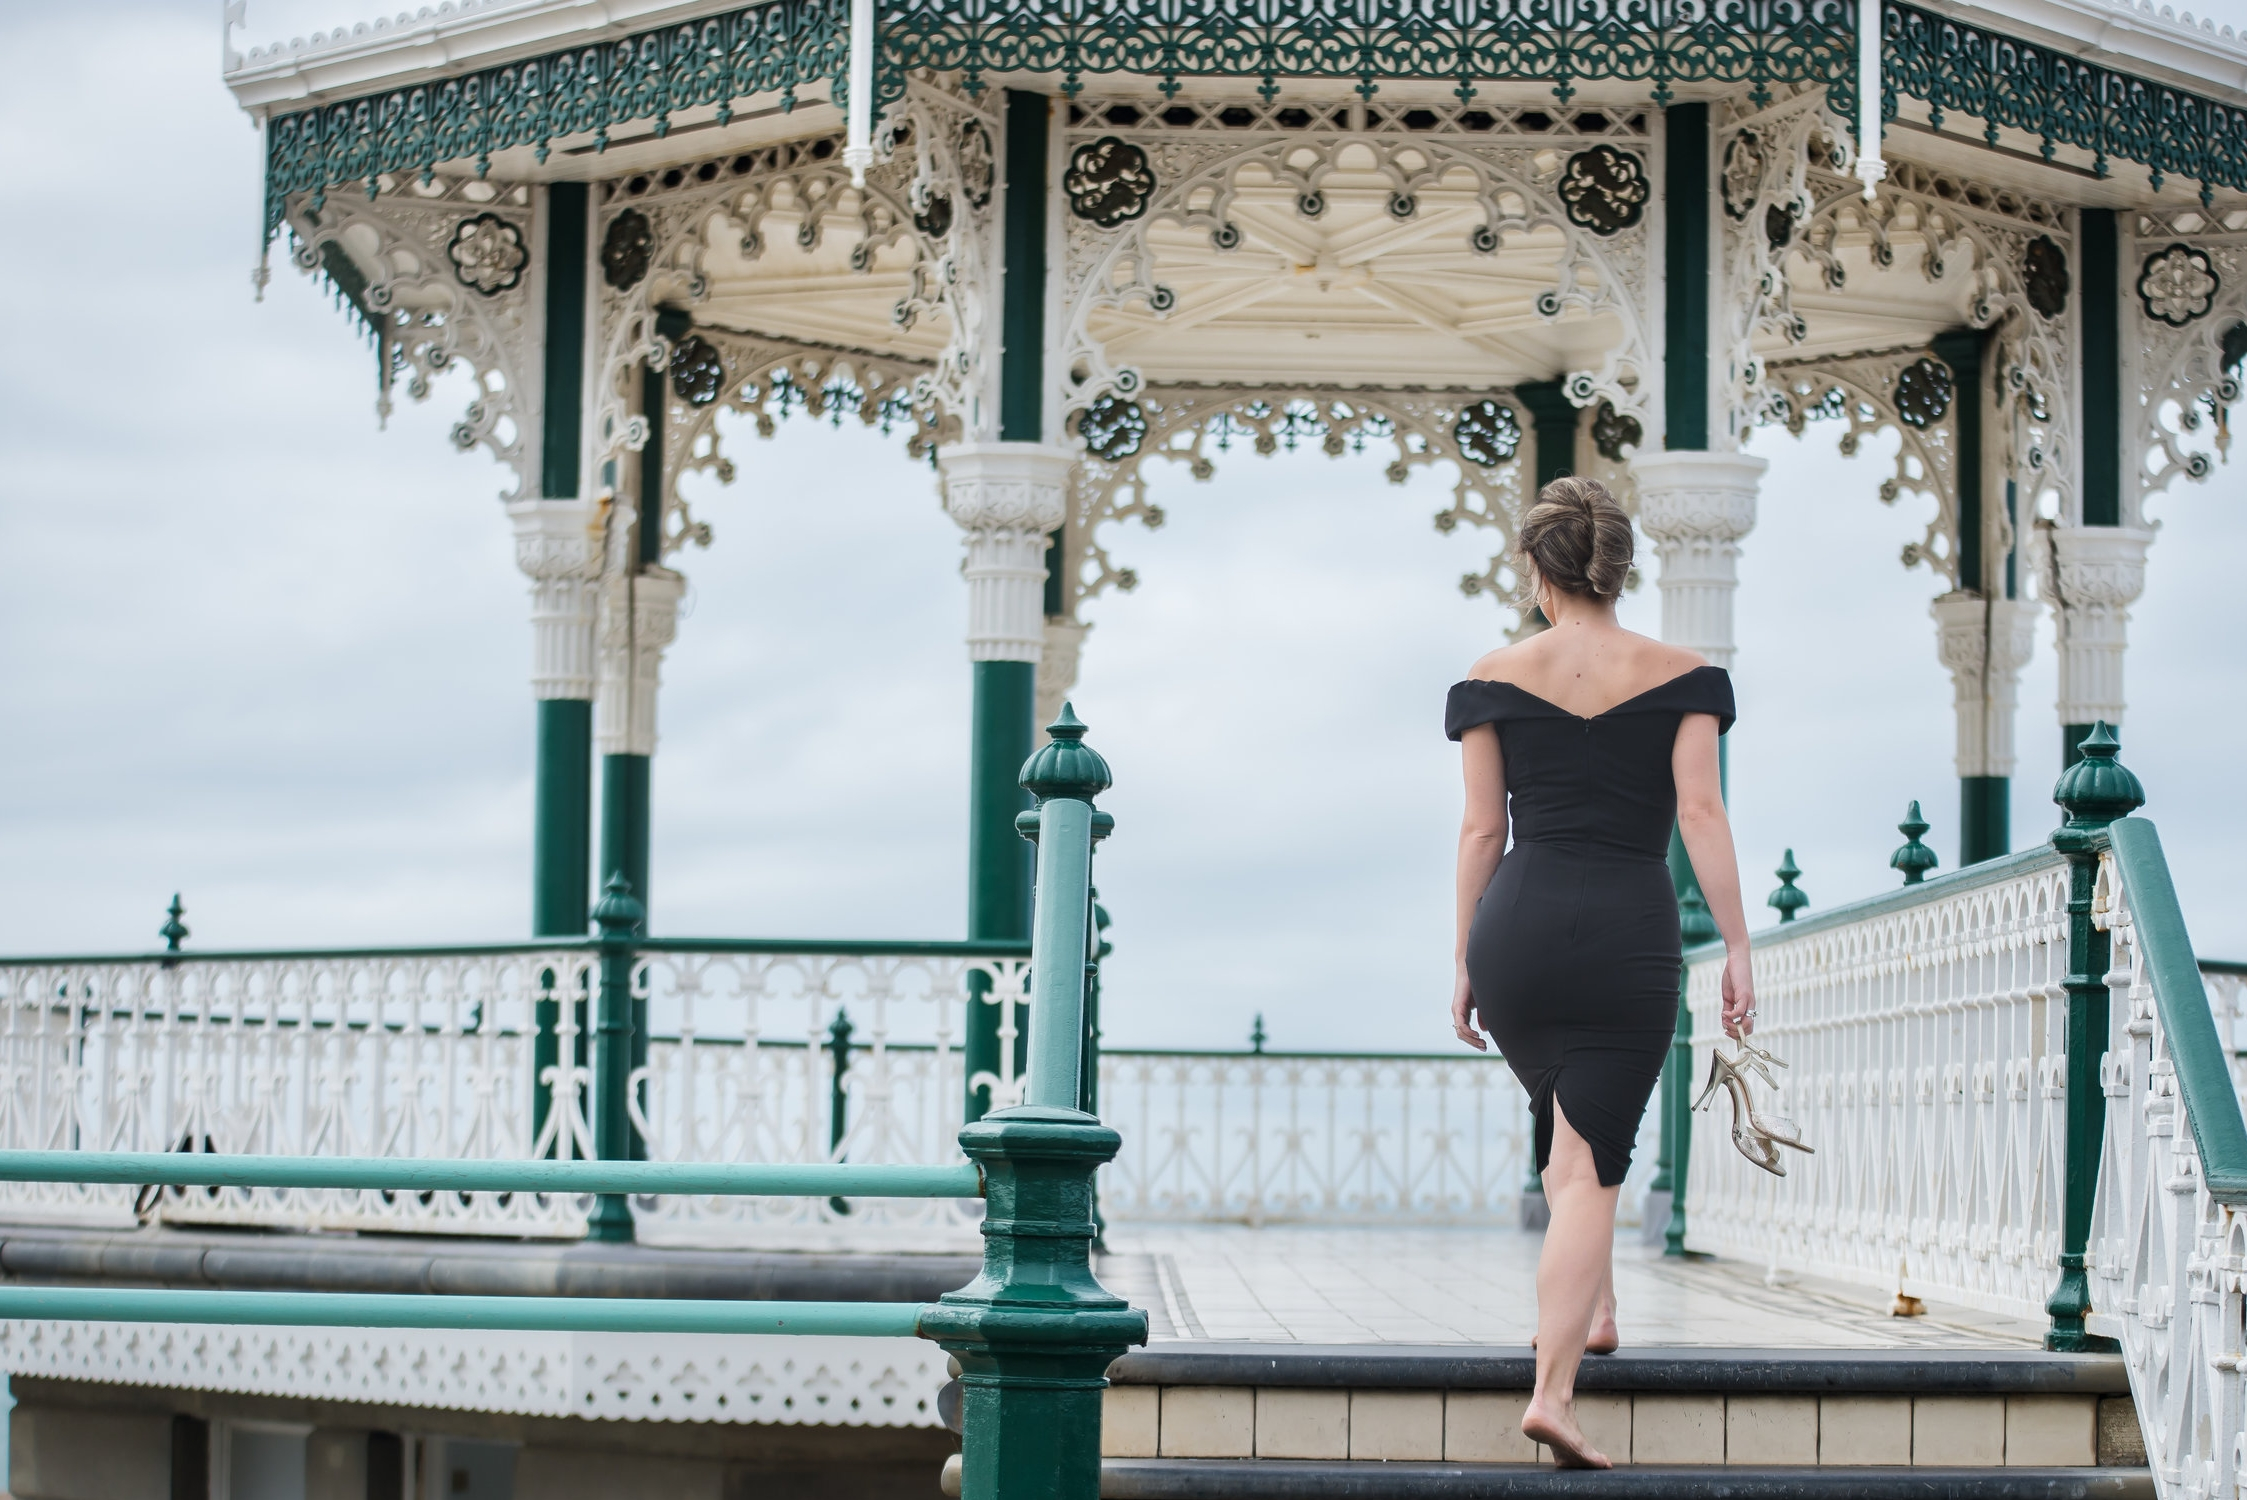 Copy of Stefania in the bandstand